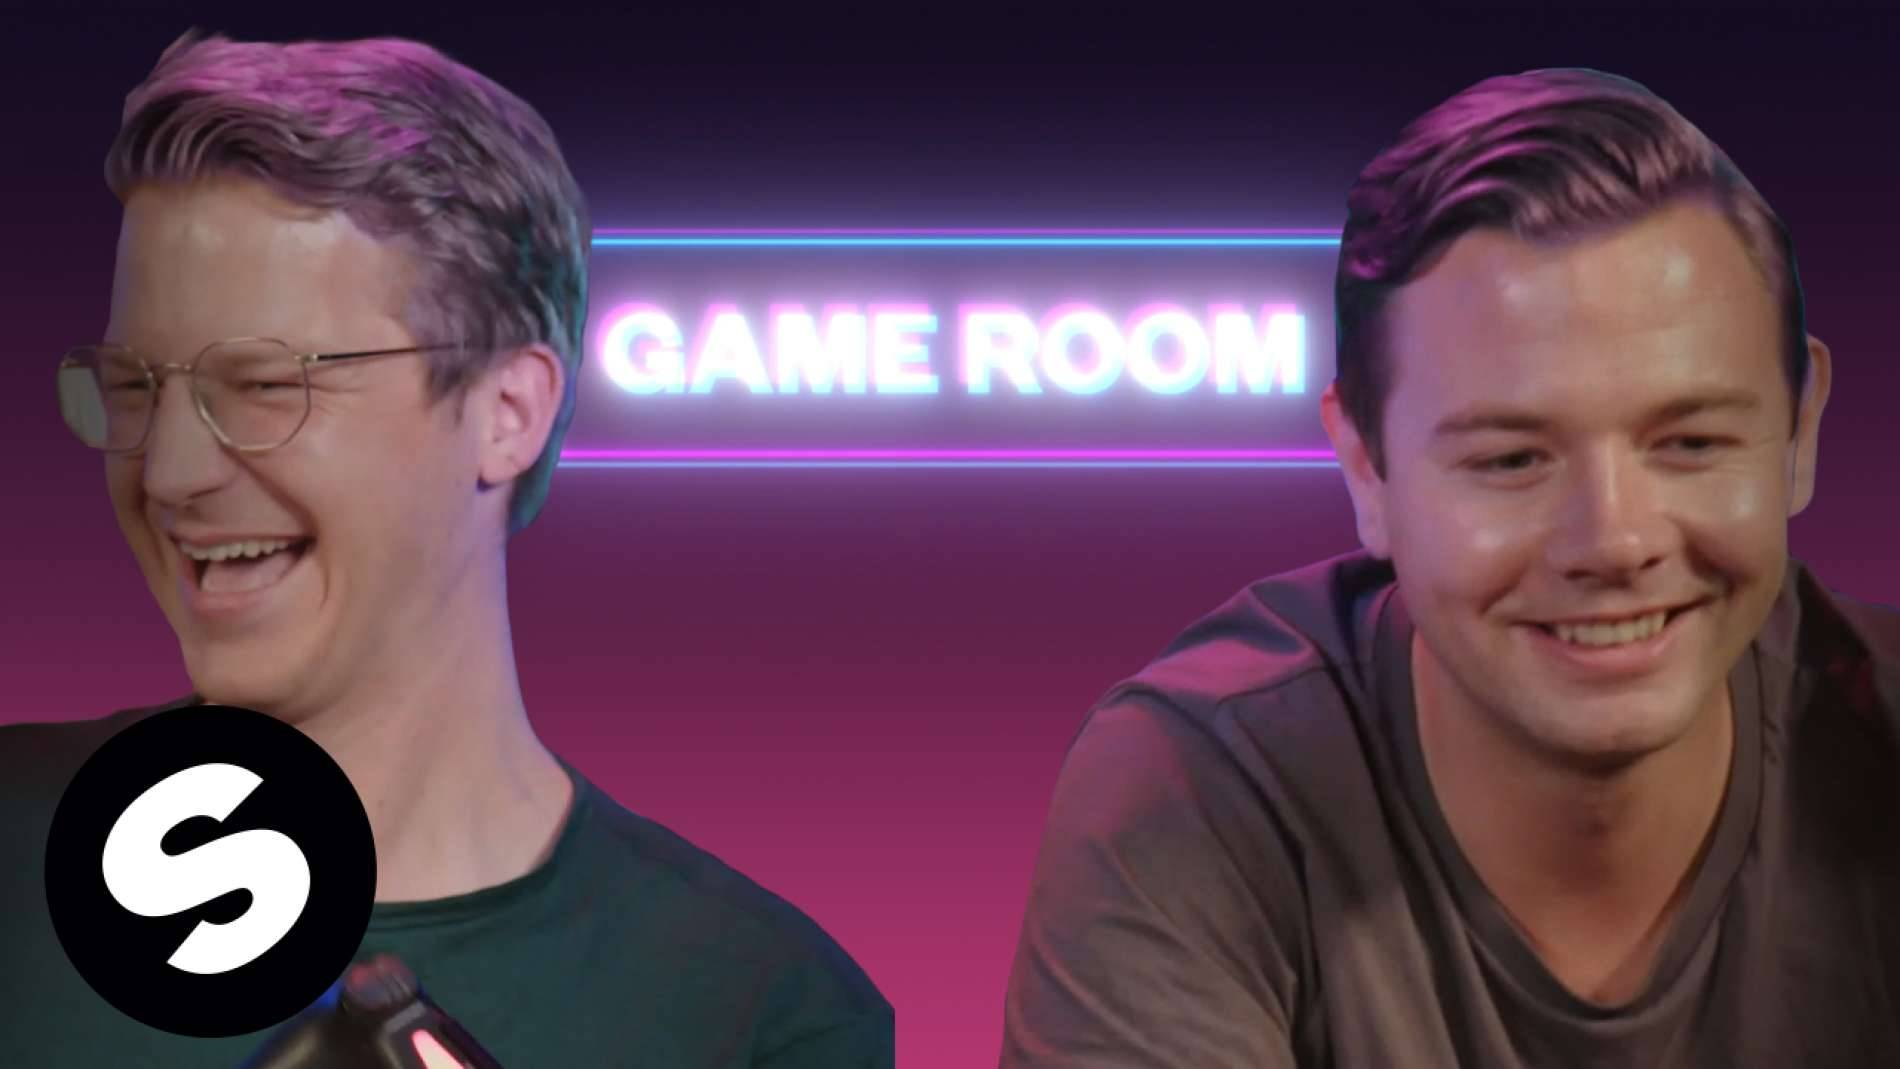 Game Room with Sam Feldt: Is Sam secretly a professional FIFA19 player?